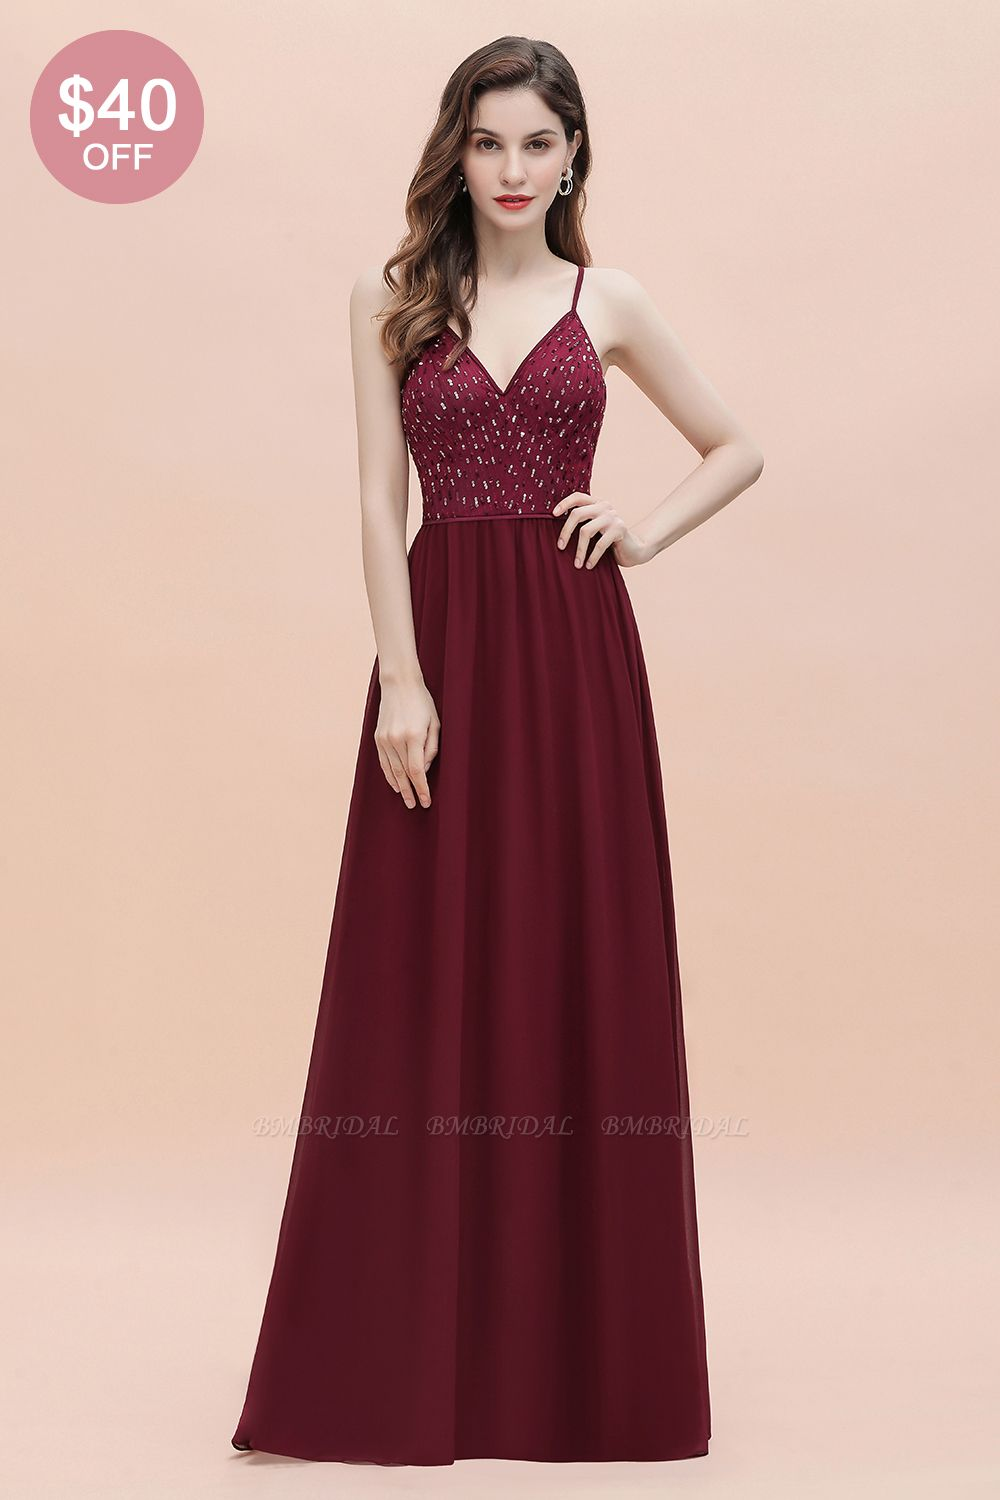 BMbridal Fabulous A-line Burgundy Chiffon Bridesmaid Dress V-Neck Spaghetti Straps Sequins Evening Dress